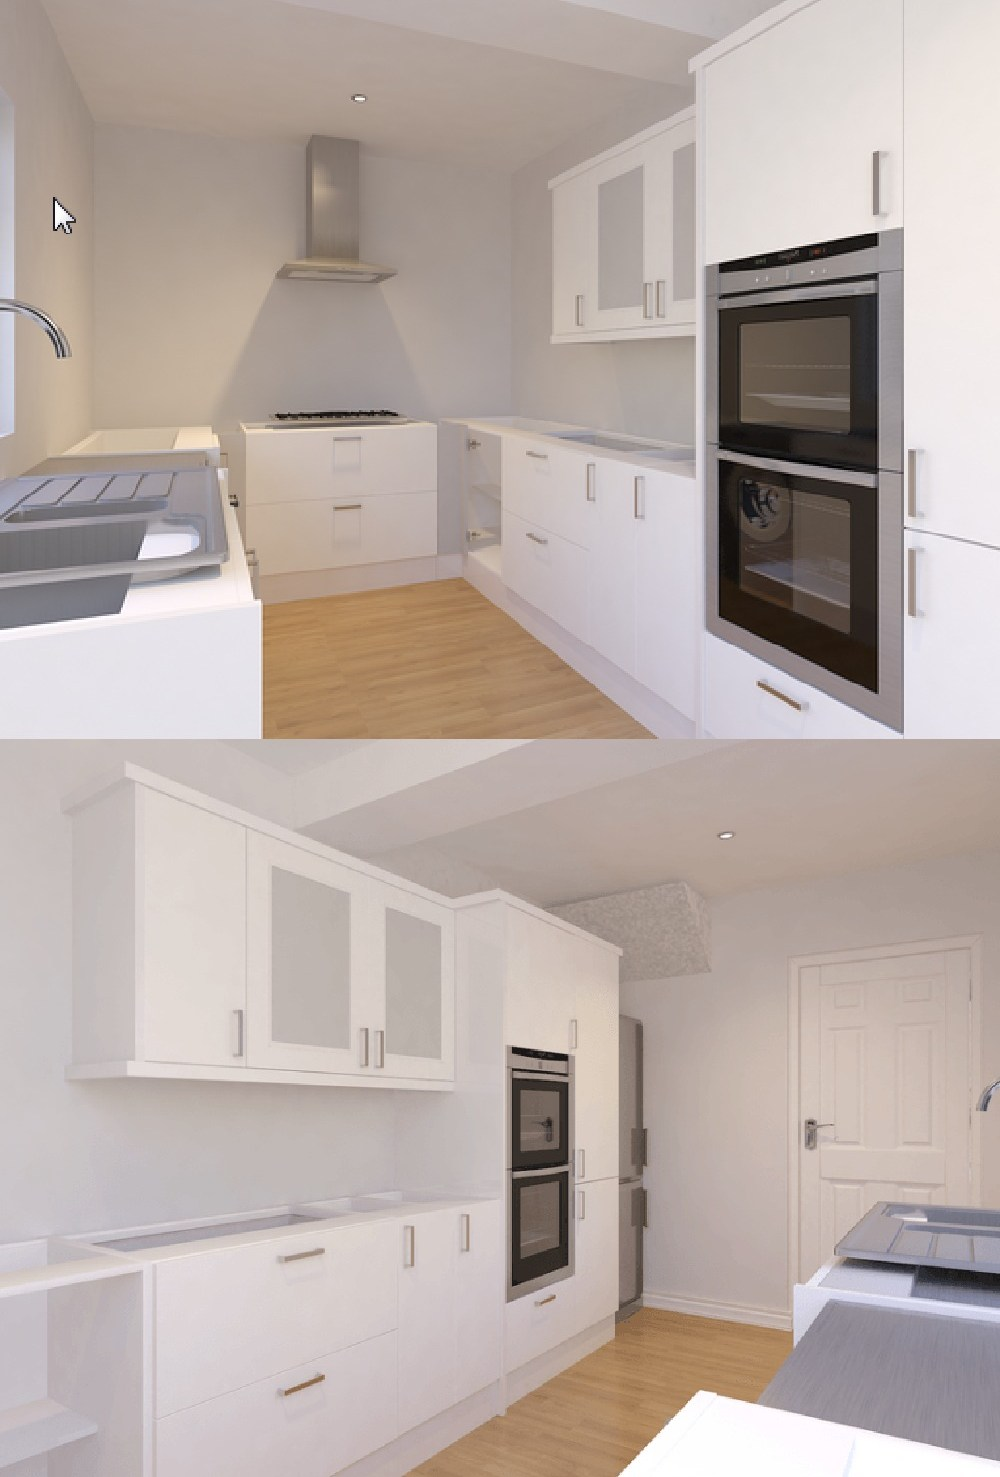 Our new kitchen plans